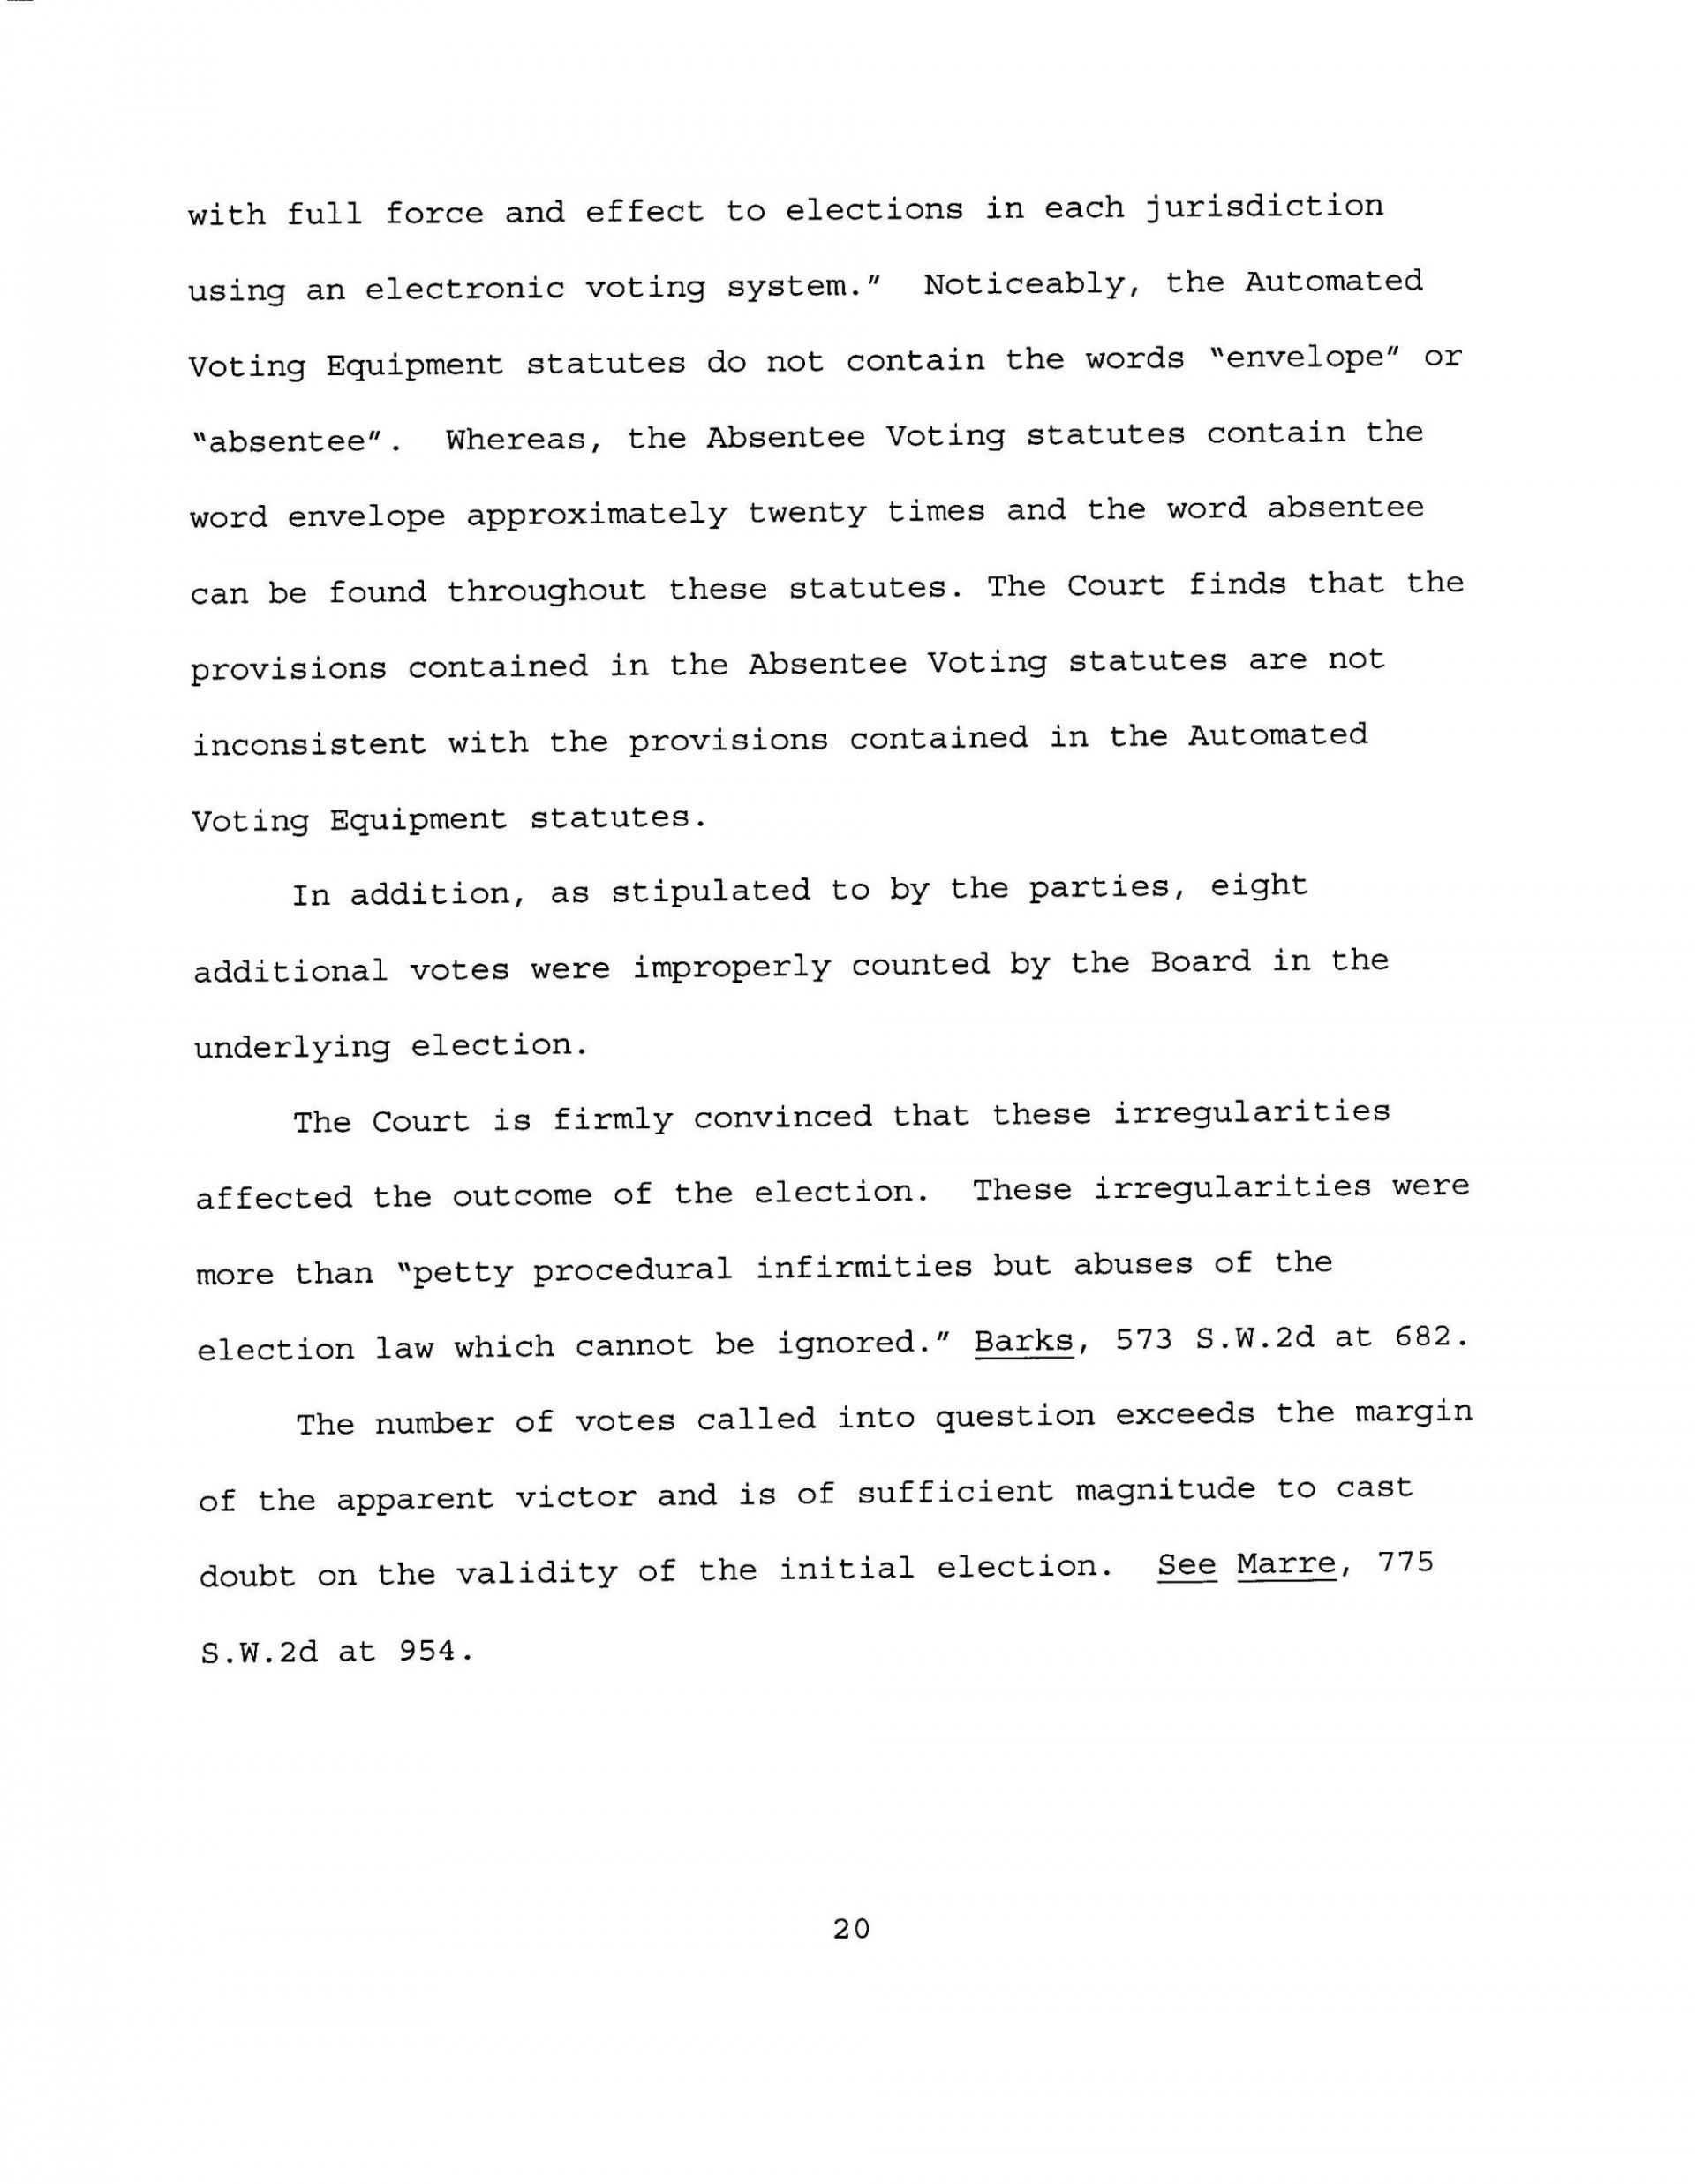 018 Memorandumorderandfinaljudgment Final Page 20quality85stripallw2000 Essay Example Why Is It Important To Vote Top Contest 1920